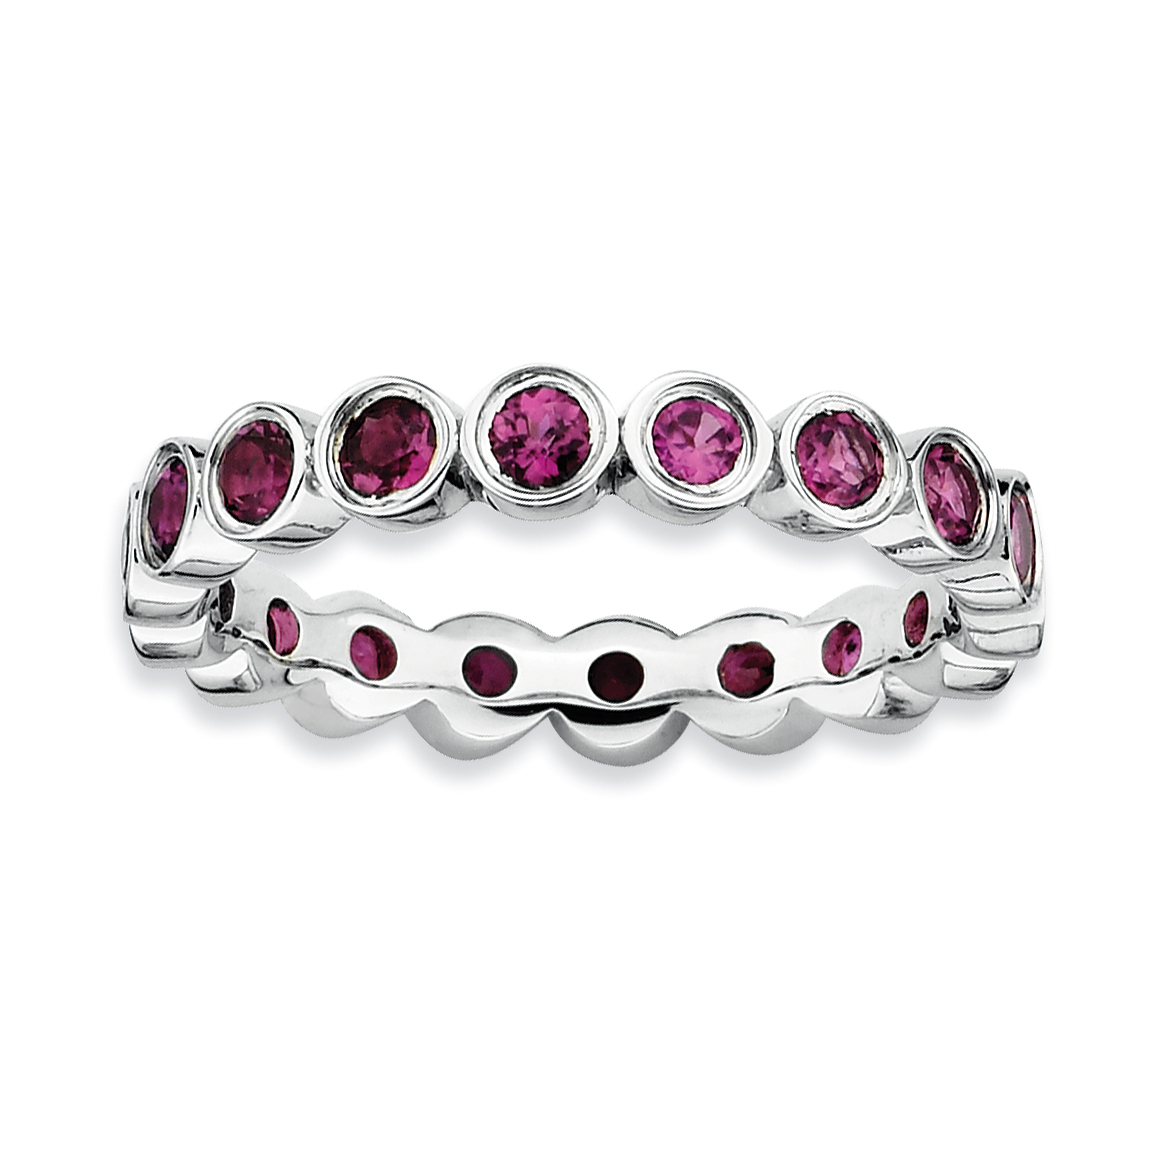 Roy Rose Jewelry Sterling Silver Stackable Expressions Rhodolite Garnet Ring ~ Size 6 by